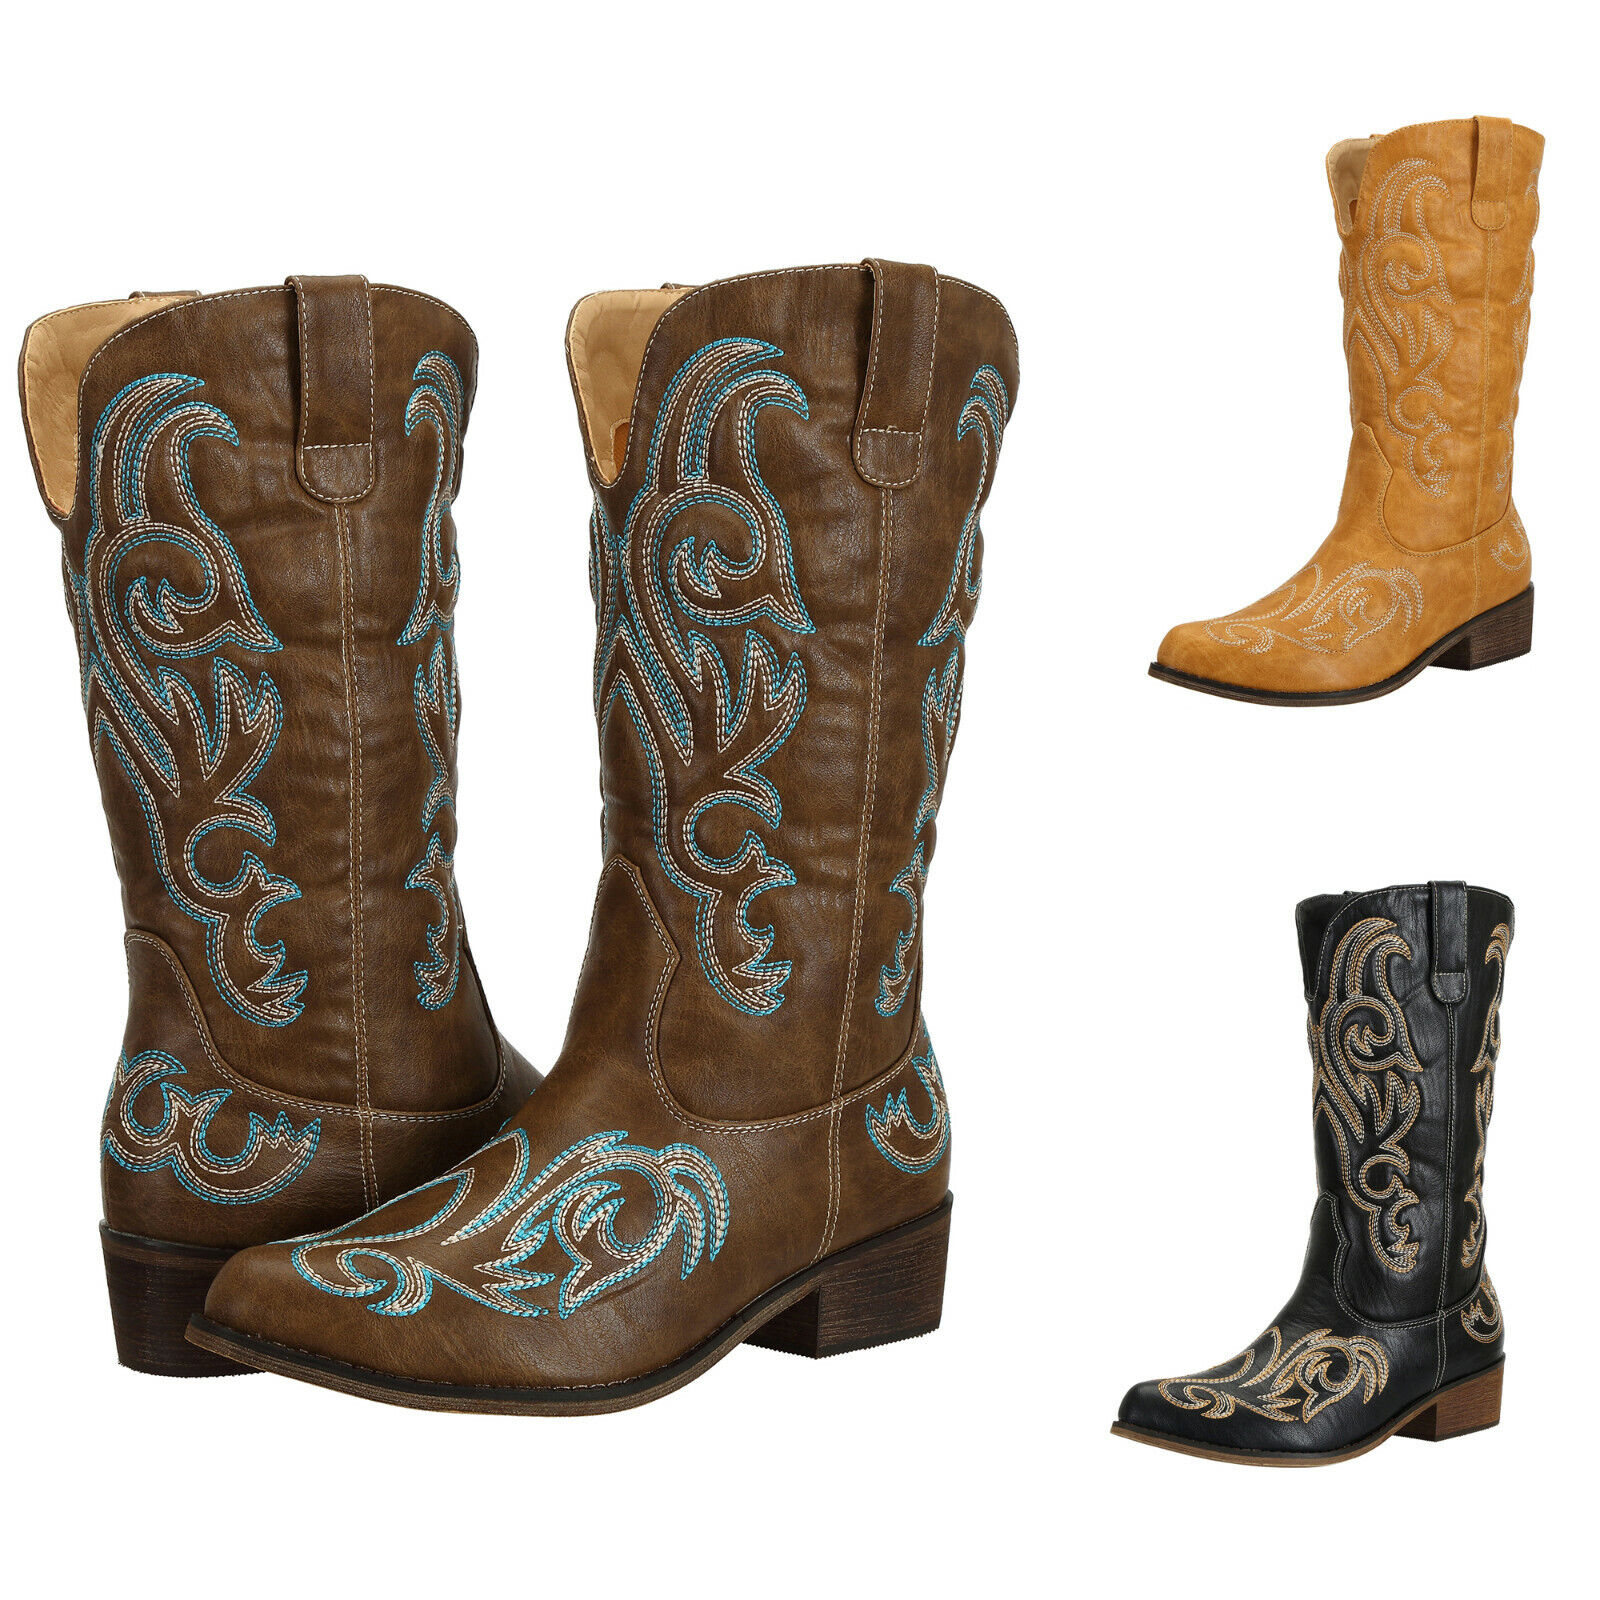 SheSole Womens Cowboy Boots Cowgirl Western Mid Calf Winter Shoes AU Size 5-11